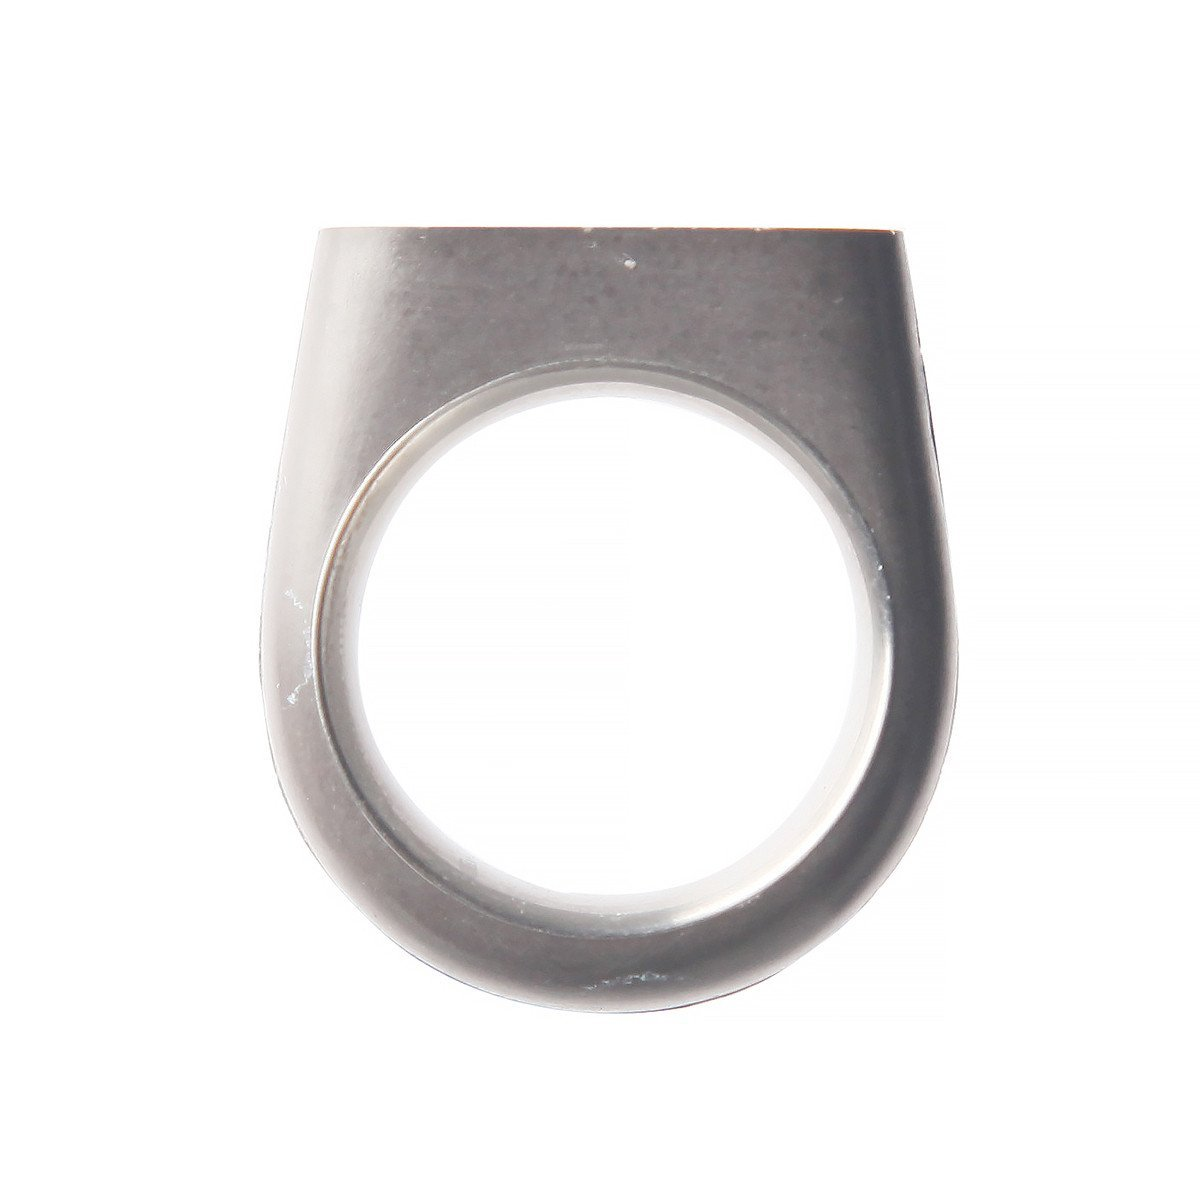 Upright Concrete Ring -33622